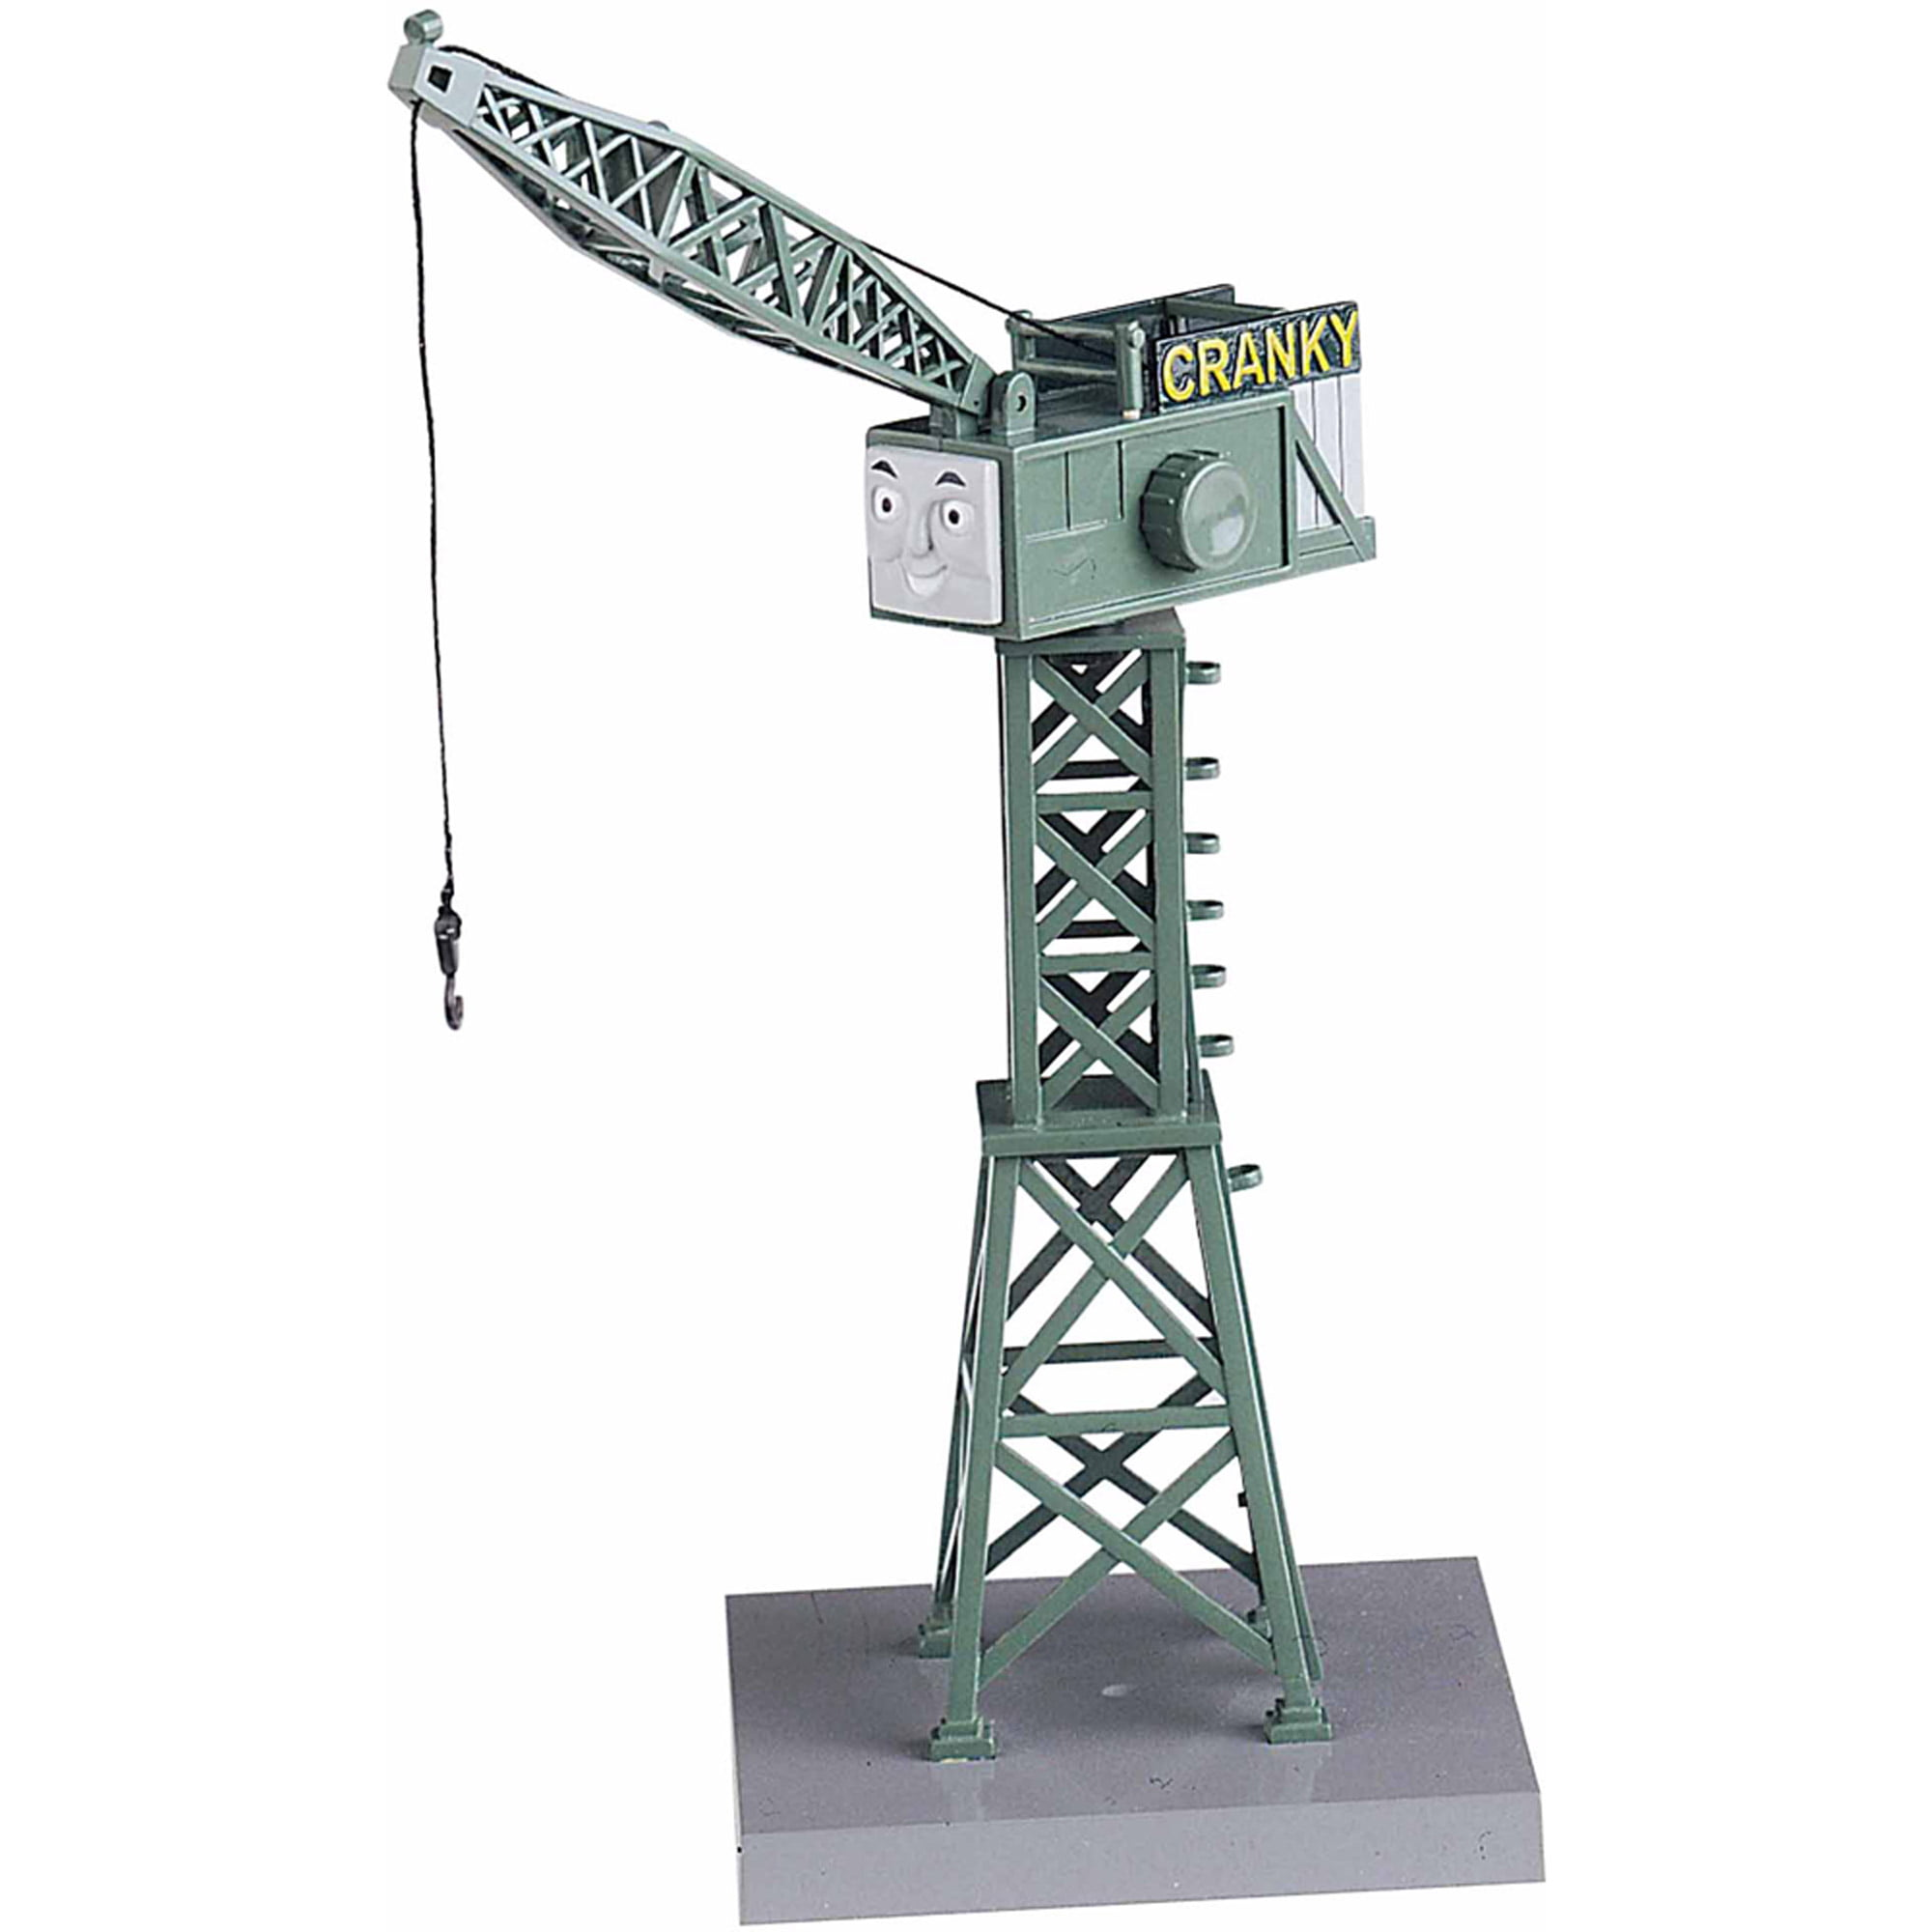 Bachmann Trains Thomas and Friends Cranky The Crane Scenery Item, HO Scale by Bachmann